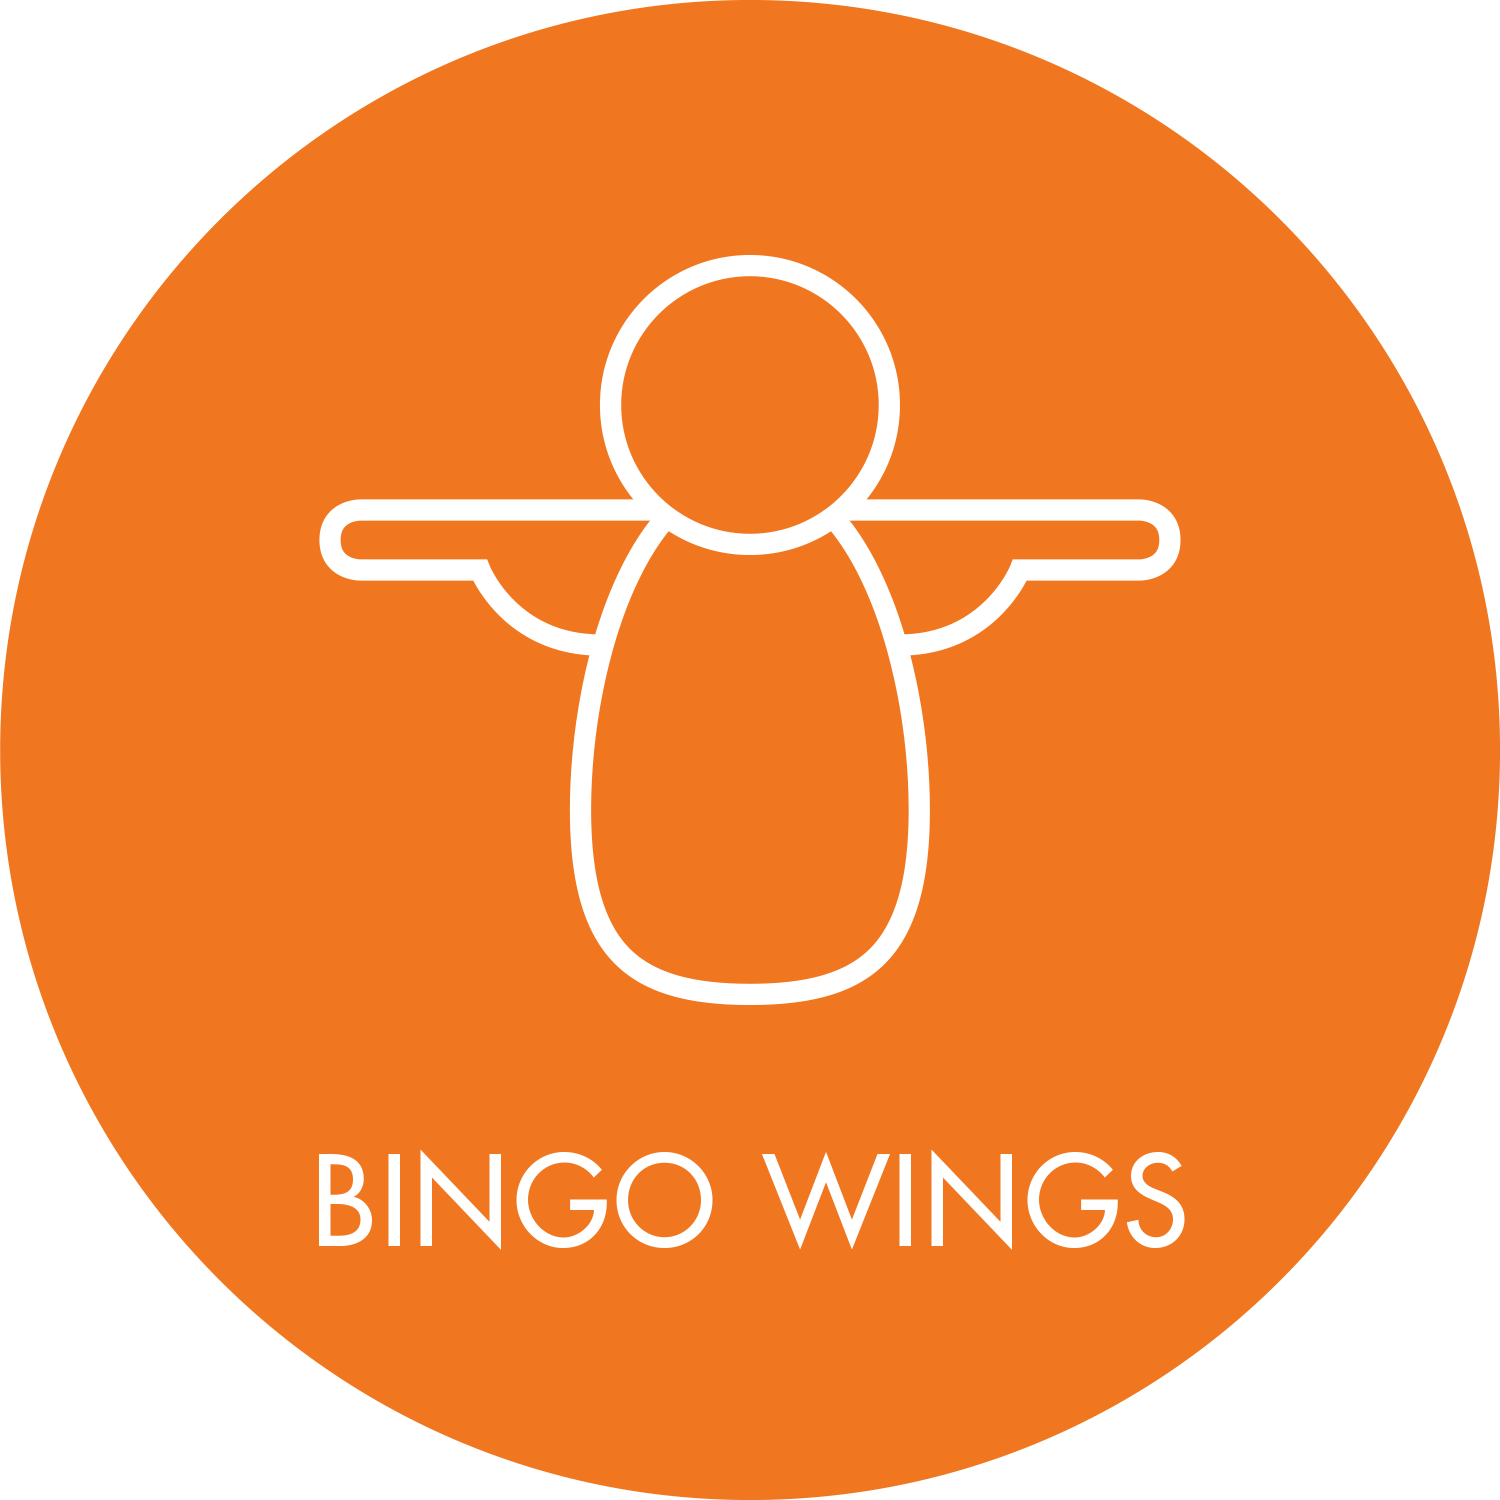 Circle_Icon_Text_Fat_Spot_Bingo_Wings.png